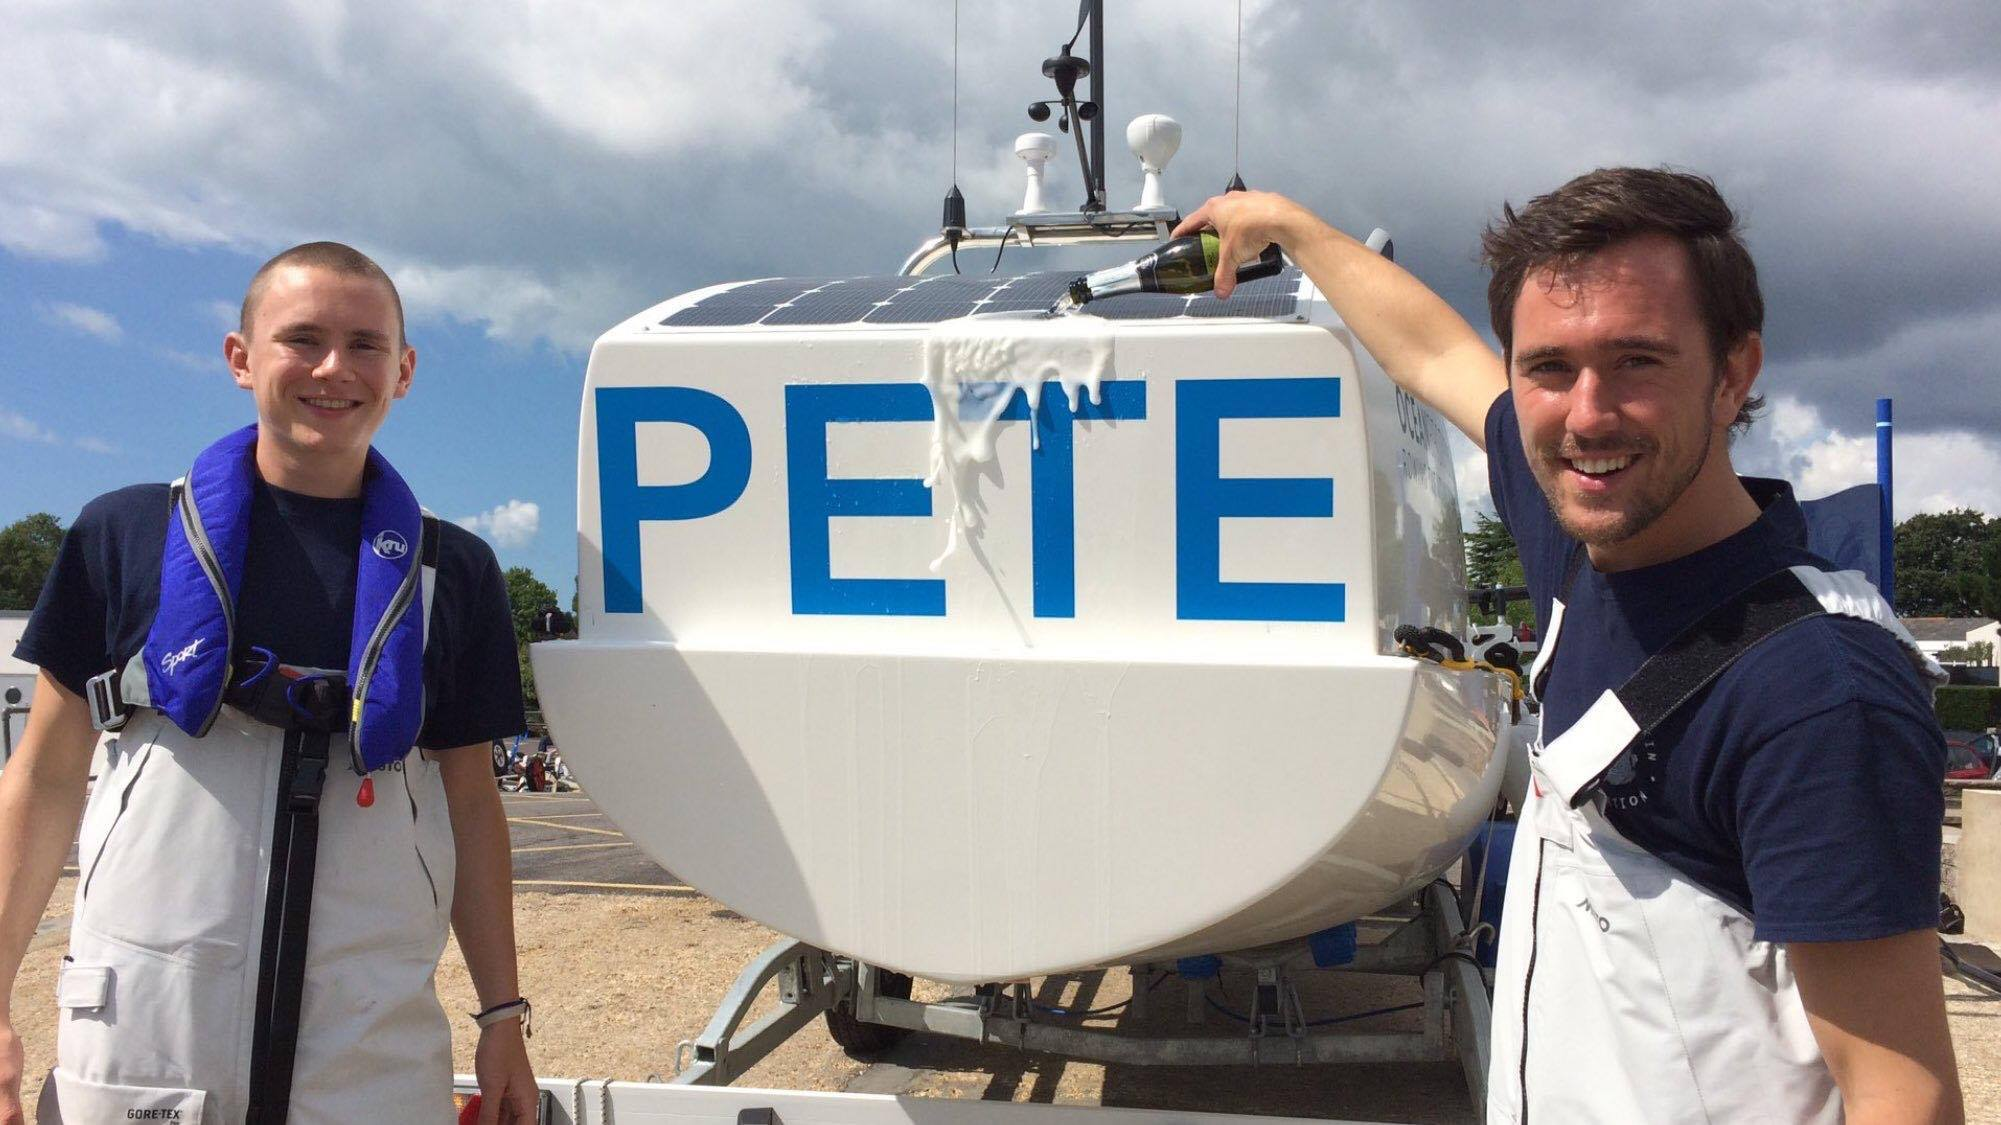 Boat named after Peter.